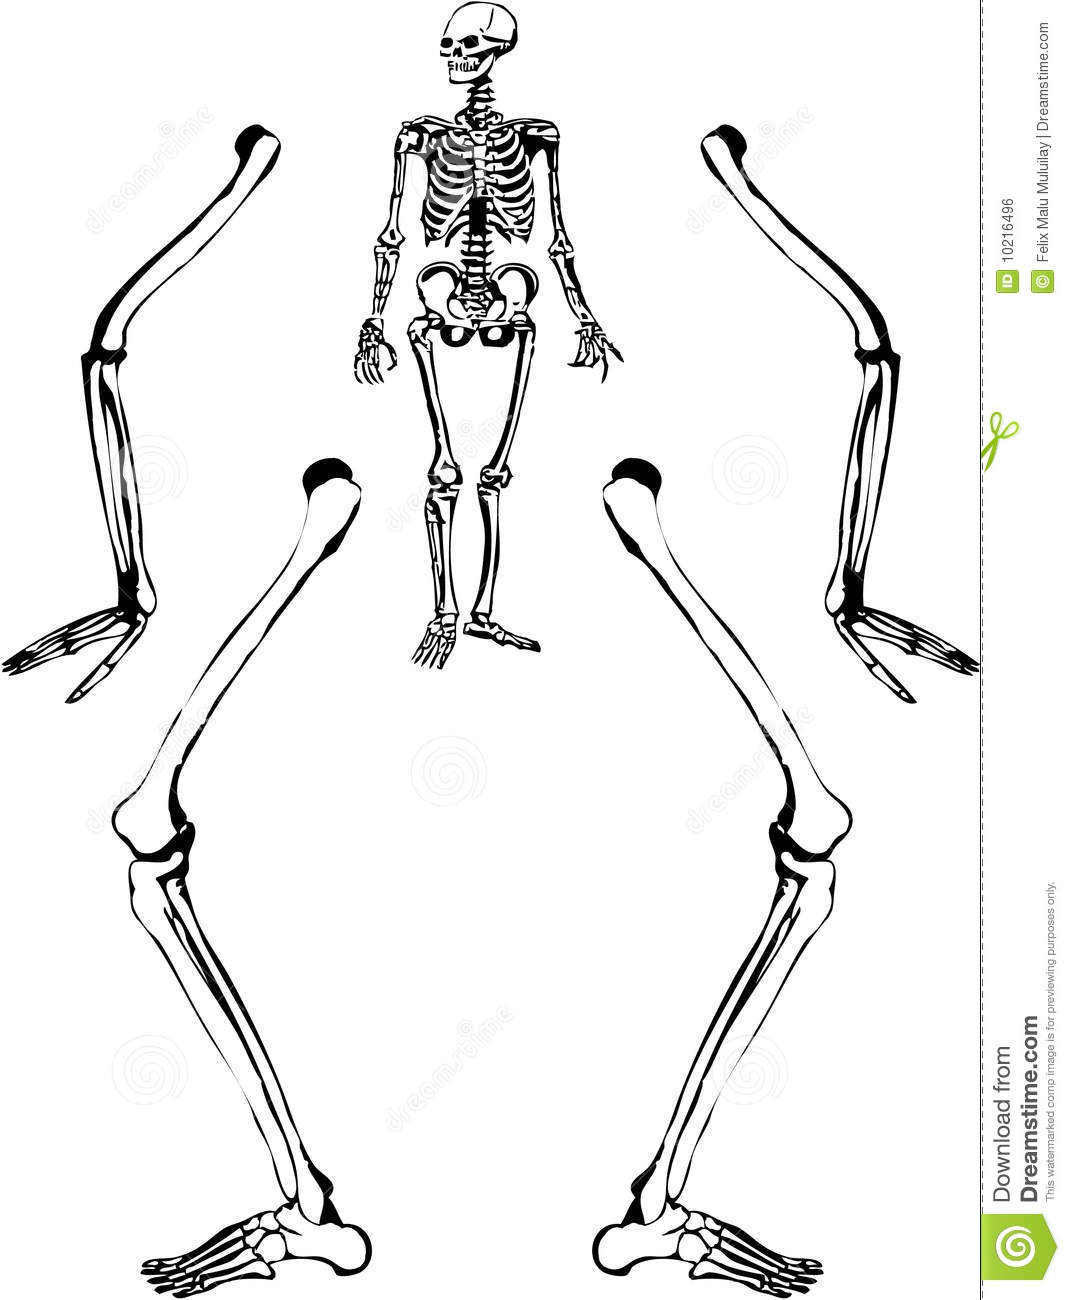 Human Skeleton Drawing Stock Vector Illustration Of Dead 10216496